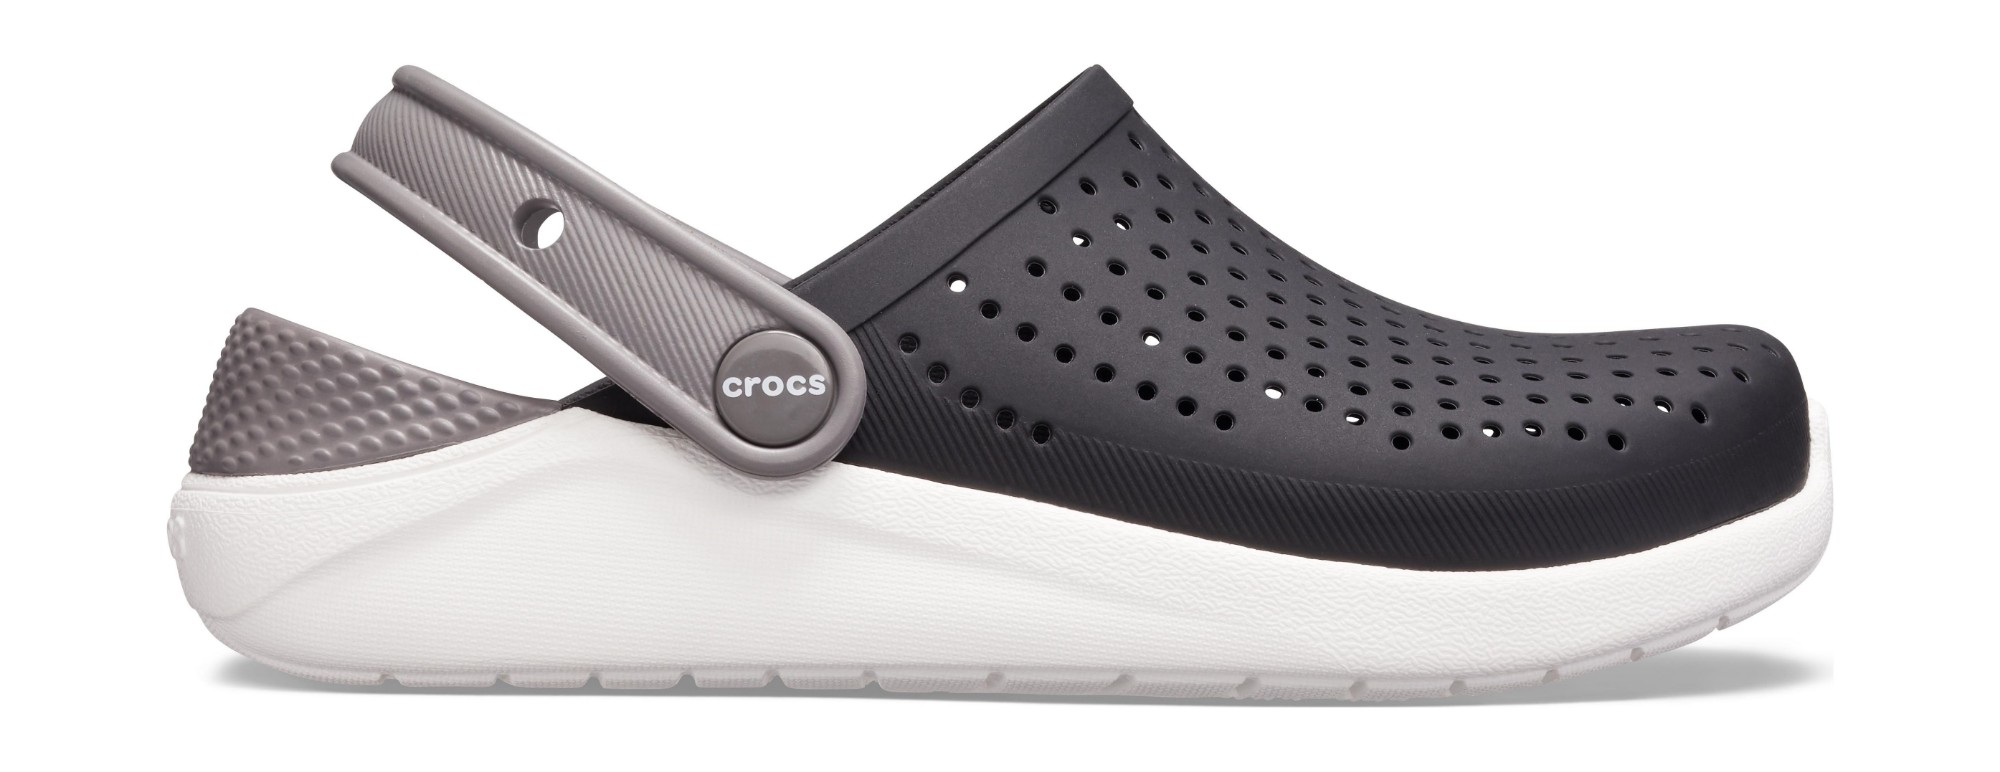 Crocs™ LiteRide Clog Kid's Black/White 29